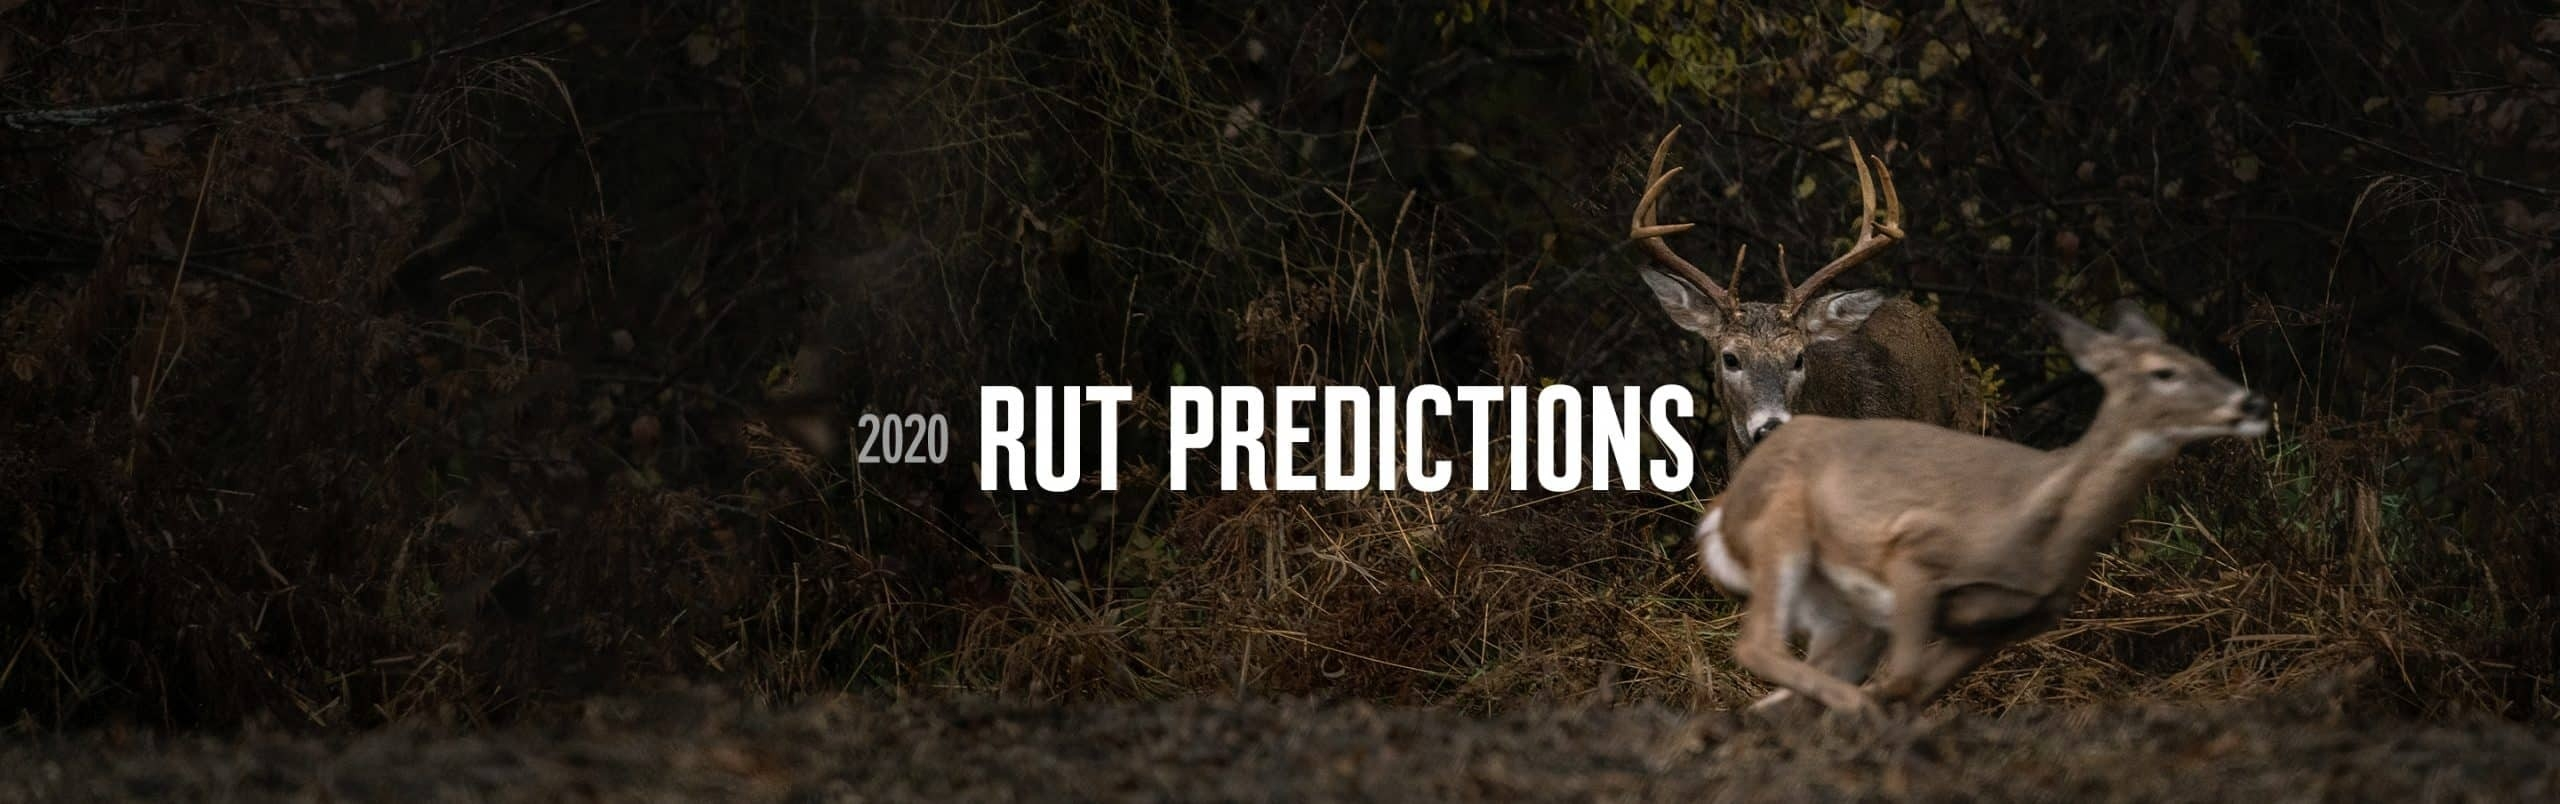 2020 Rut Predictions | Onx Maps  2020 Rut Forcast For Wisconsin